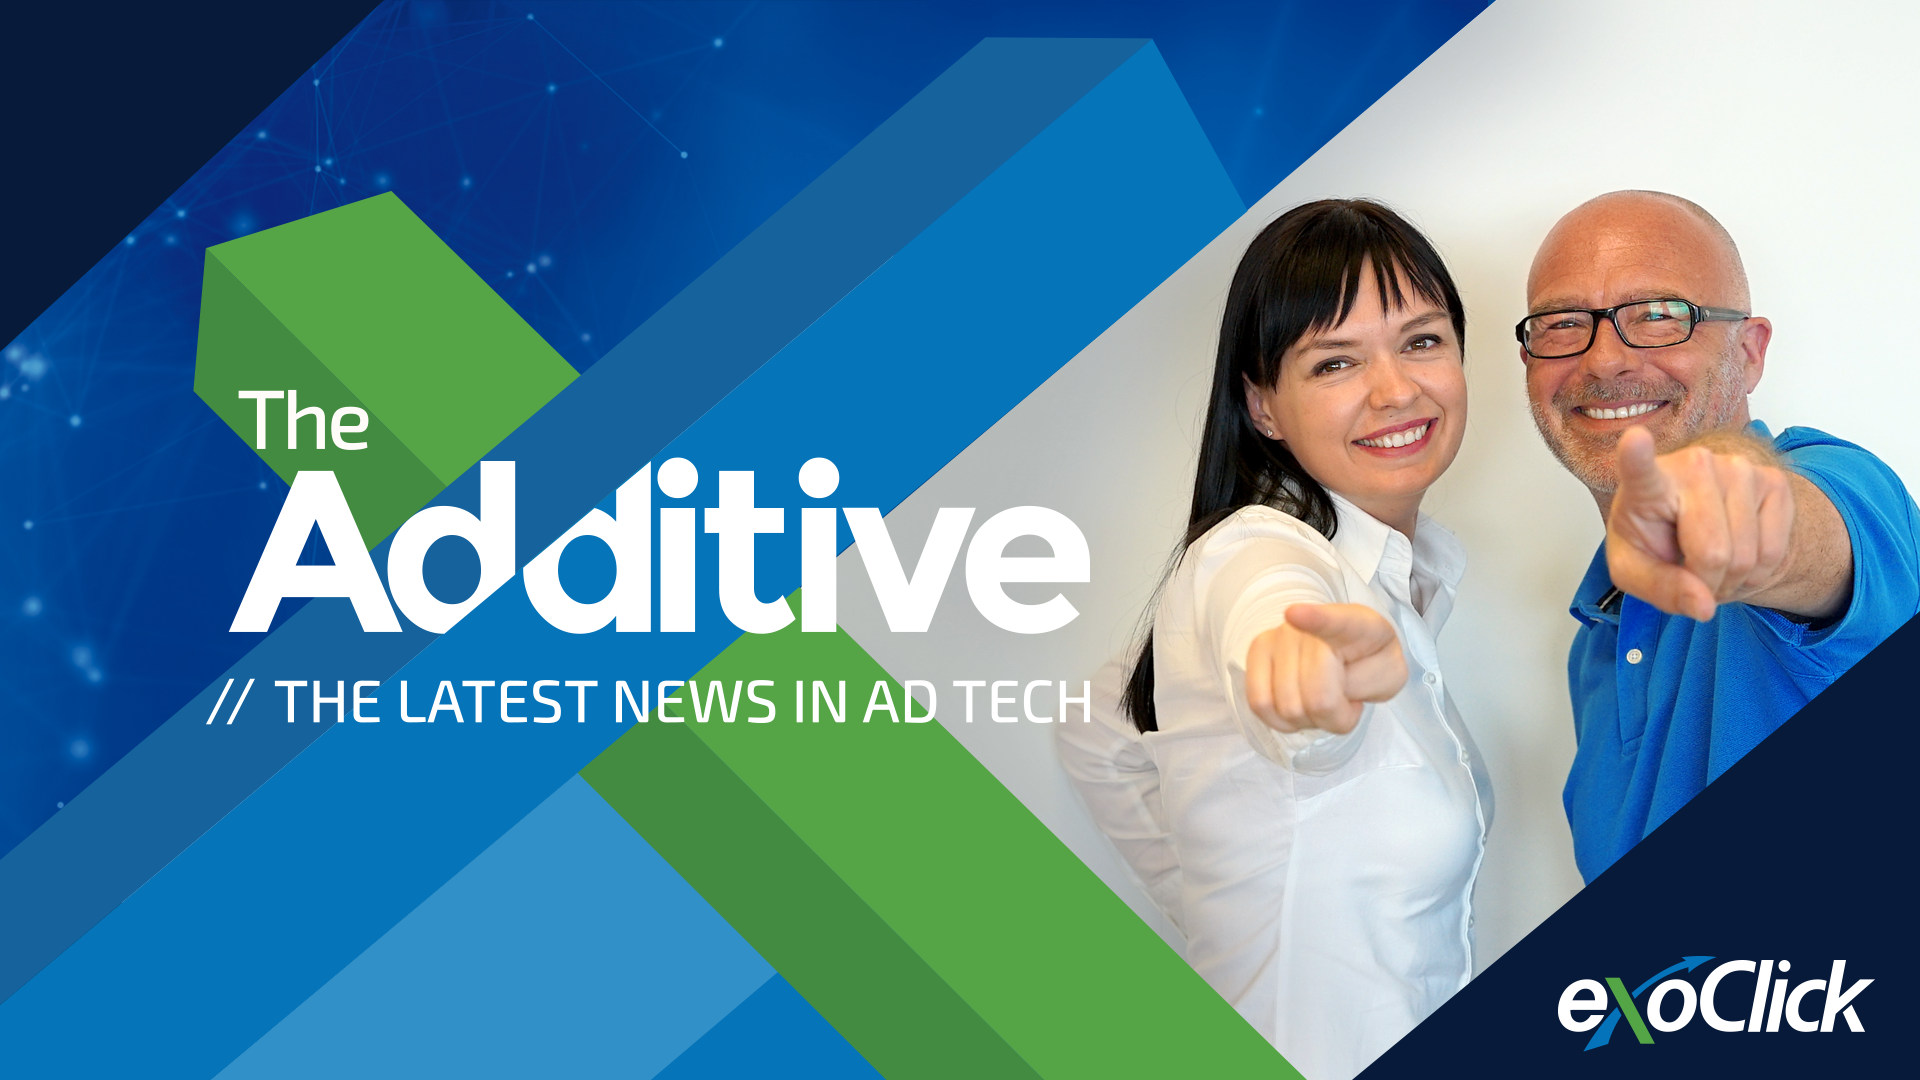 The Additive October 2019